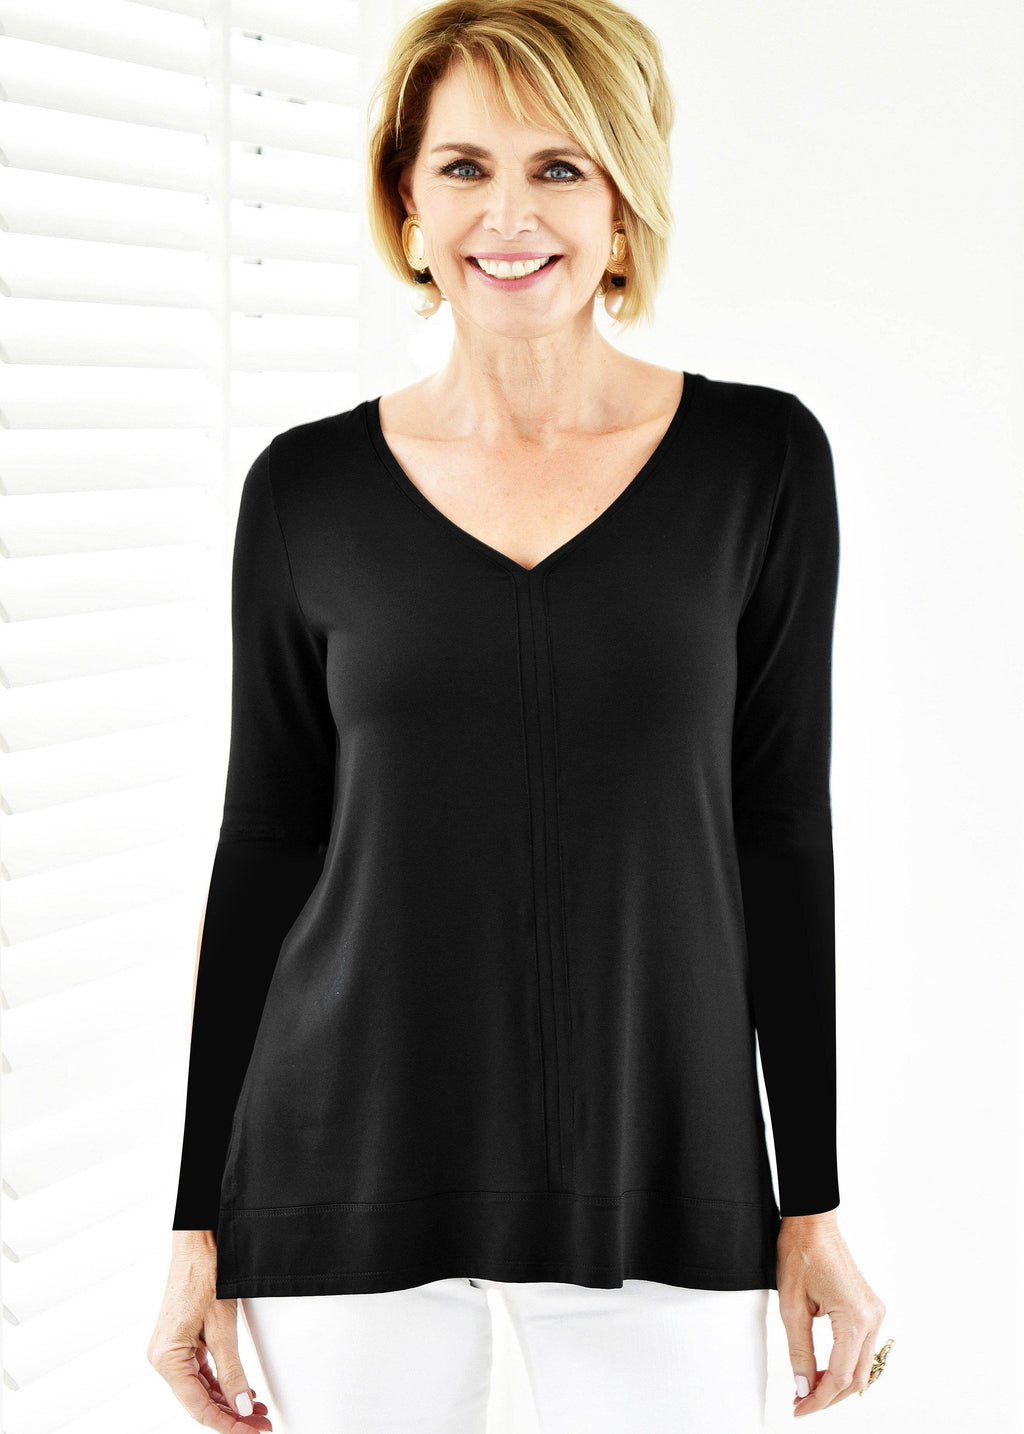 PAULA RYAN ESSENTIALS V Neck Long Sleeve Top - MicroModal - Top - Paula Ryan Essentials - Paula Ryan